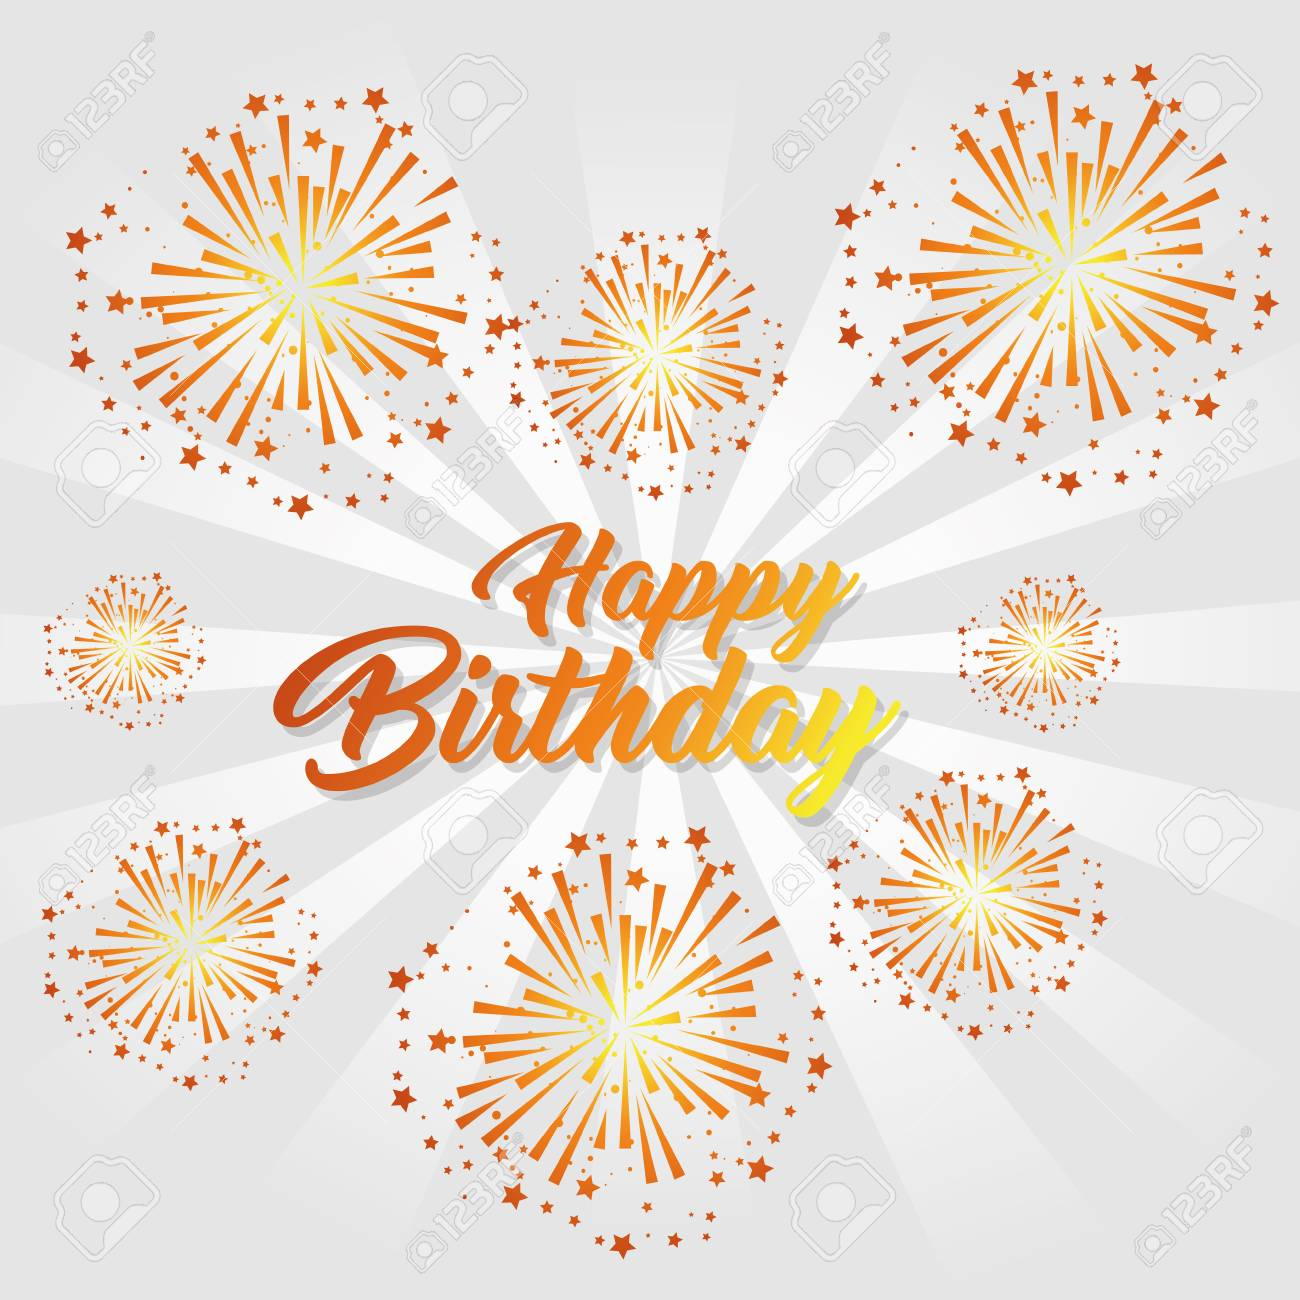 Happy birthday greeting card colorful fireworks vector illustration happy birthday greeting card colorful fireworks vector illustration graphic design stock vector 89343564 m4hsunfo